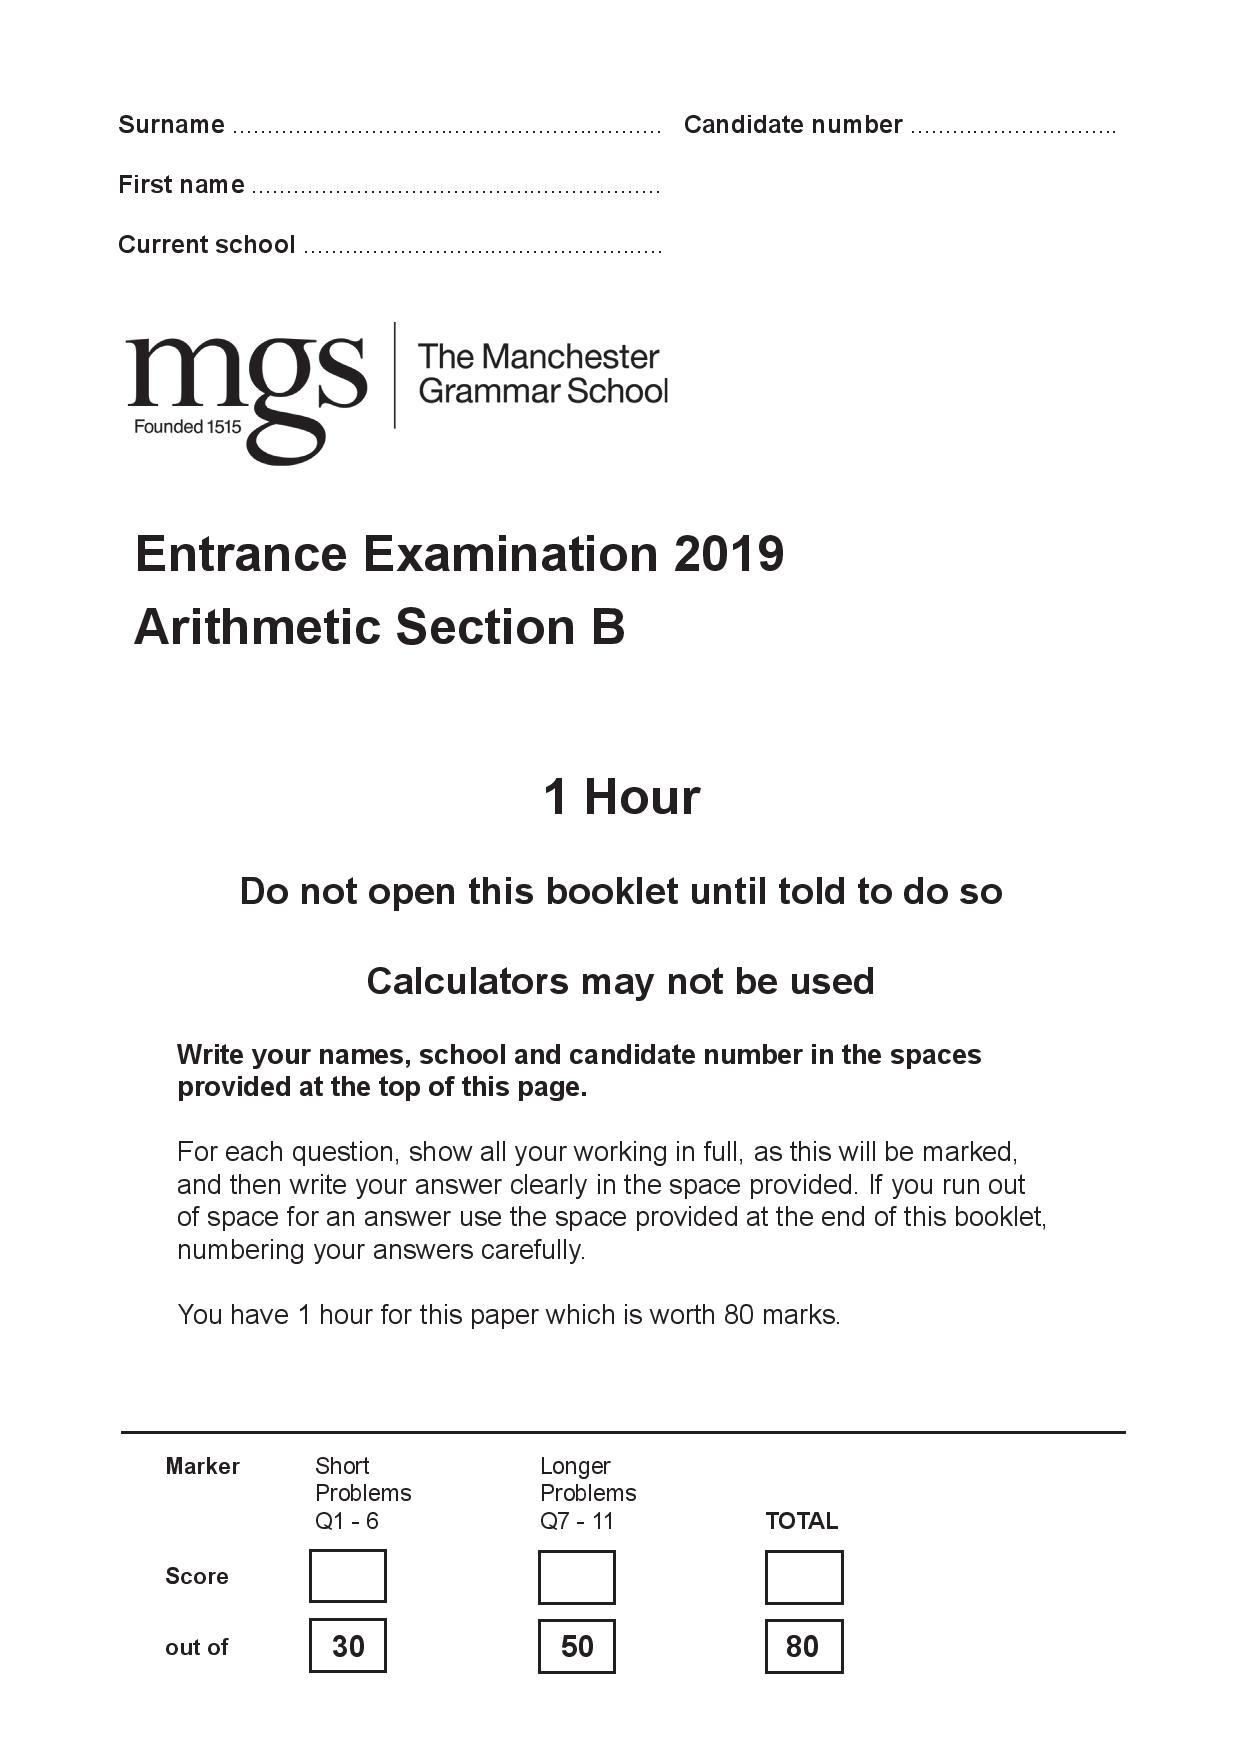 The Manchester Grammar School Entrance Examination 2019 Arithmetic Section B Answer Paper page 001